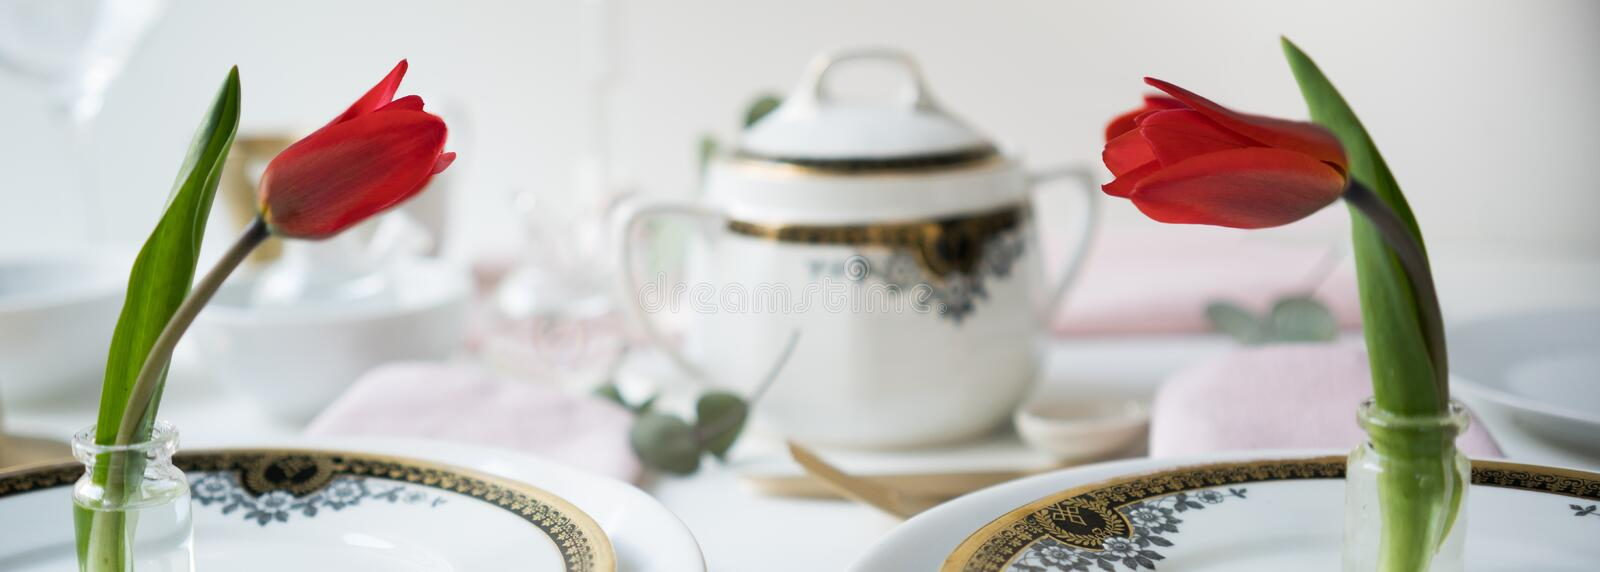 Header, banner for site design. Set of dishes for serving, Tulips, red. Horizontal format, space for text stock image